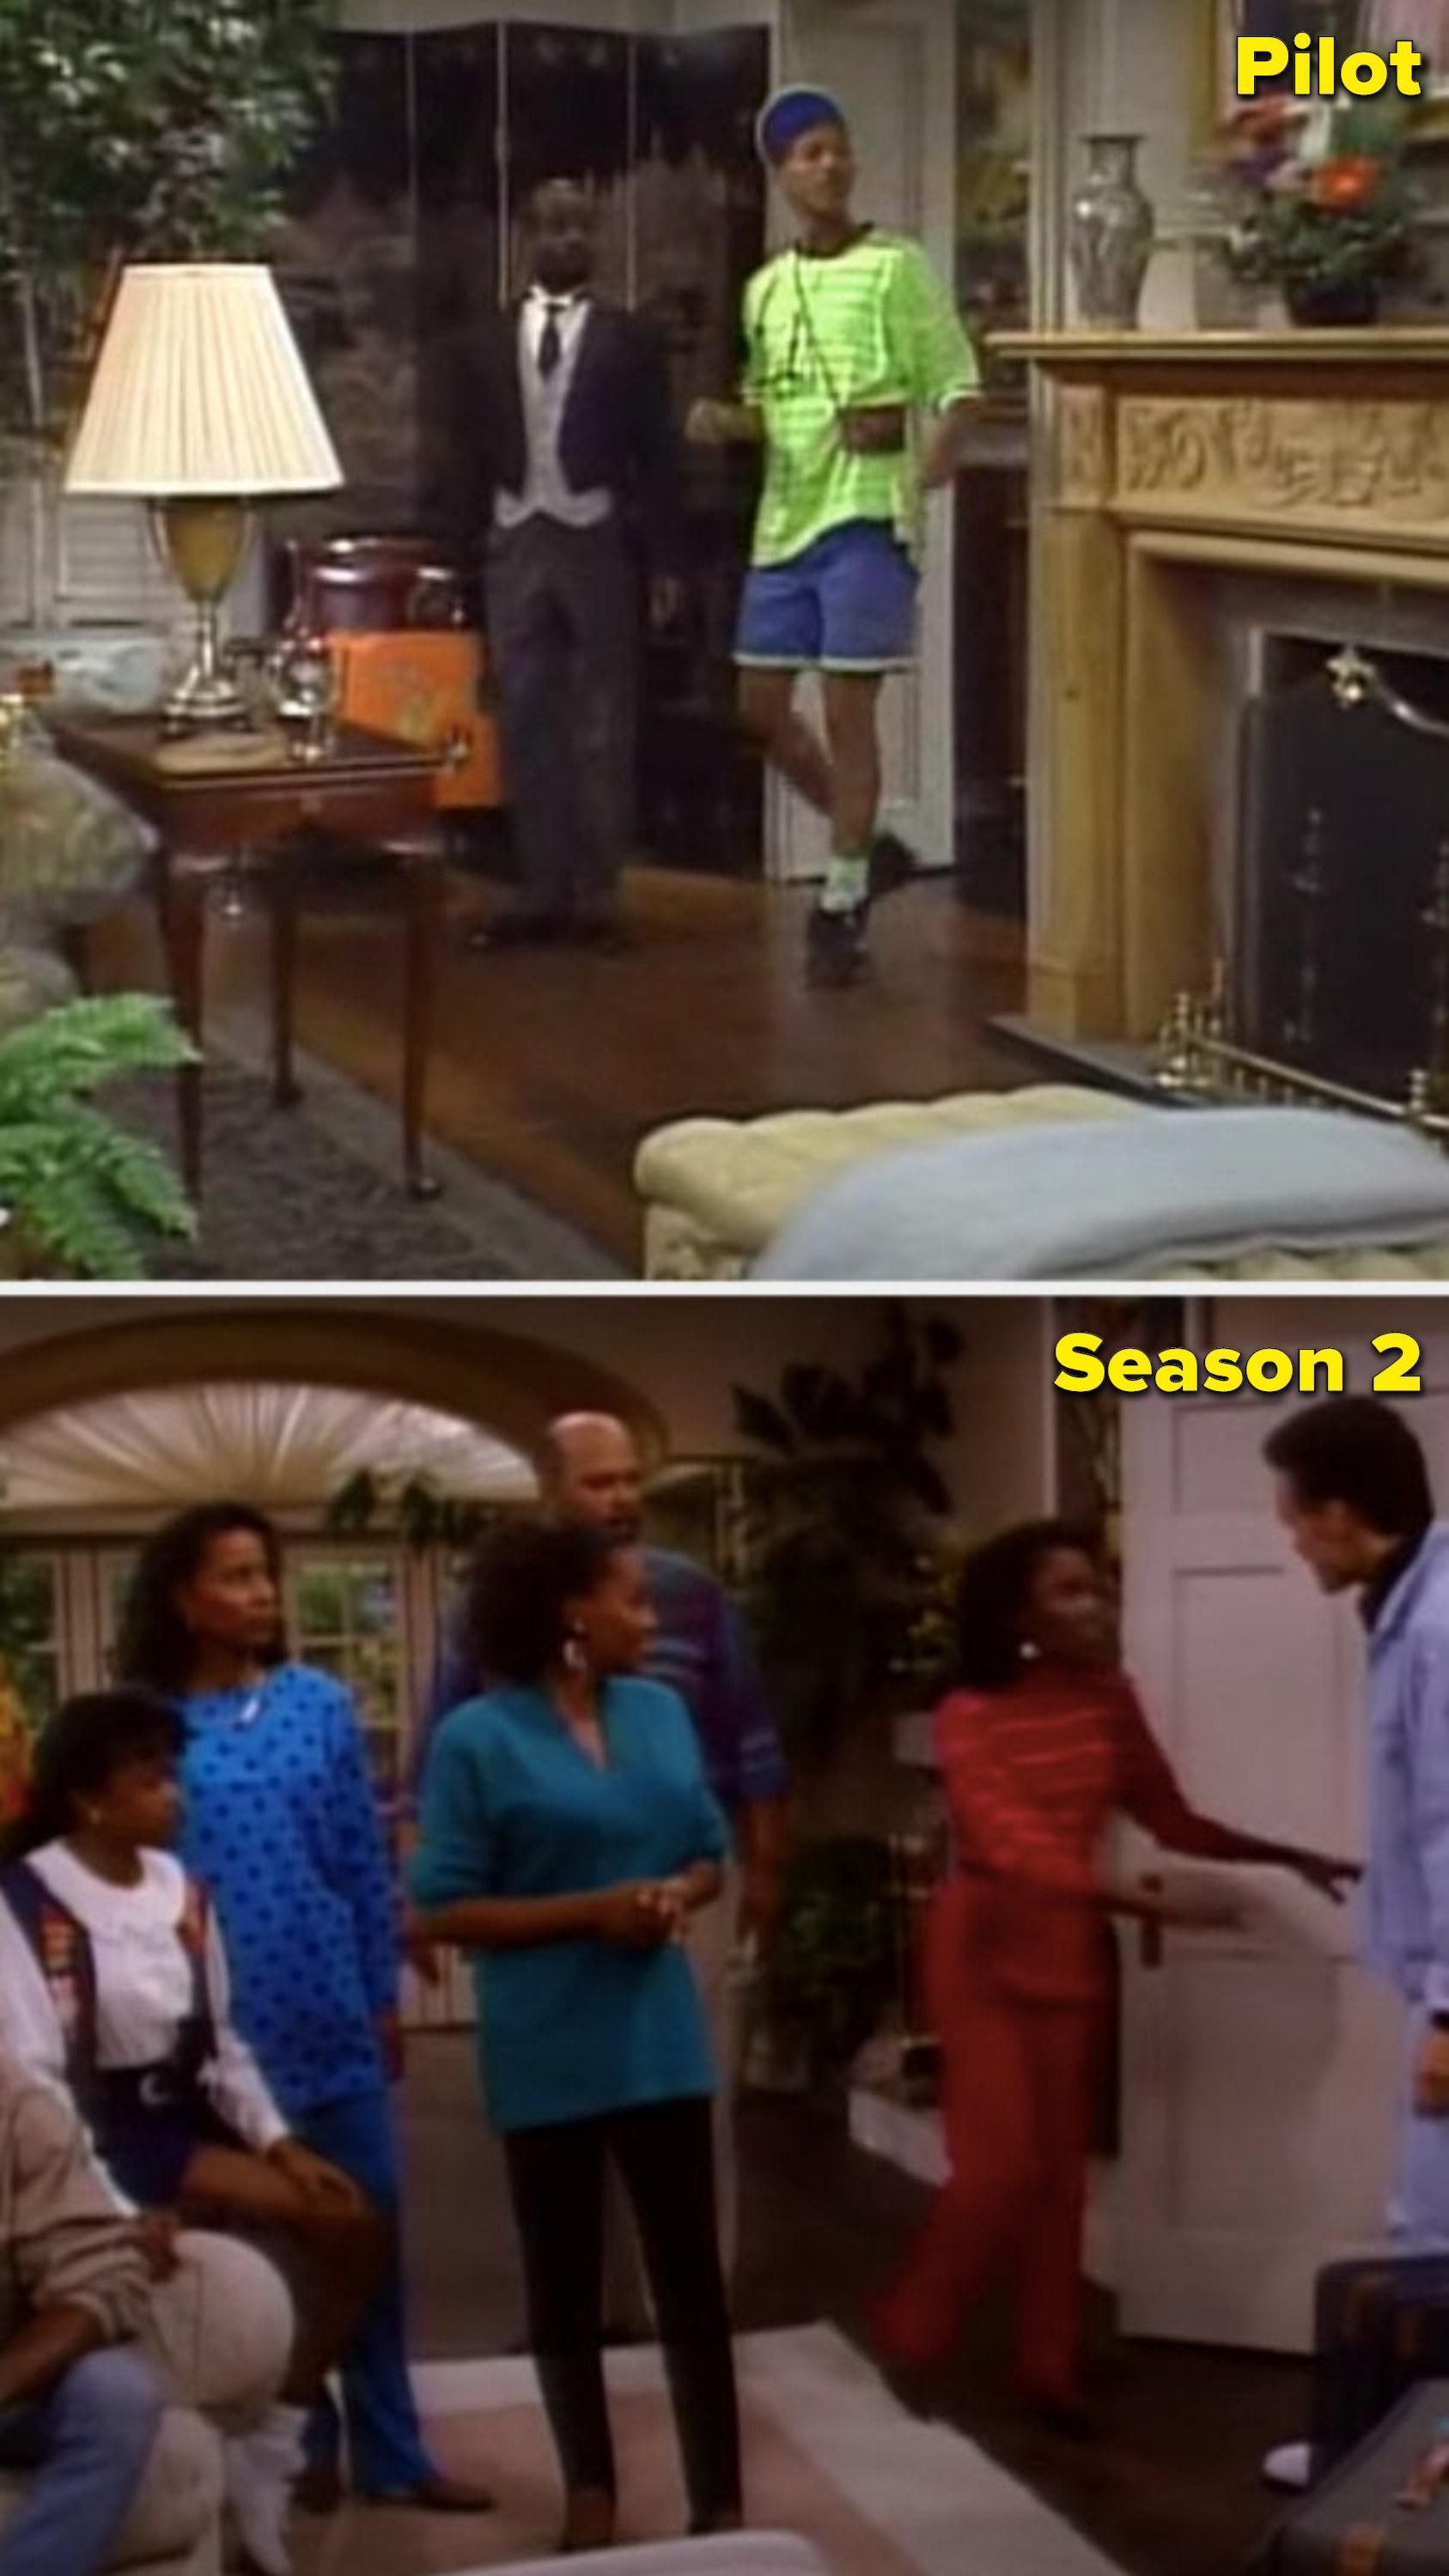 The Fresh Prince house in the pilot and the completely different Fresh Prince house in Season 2